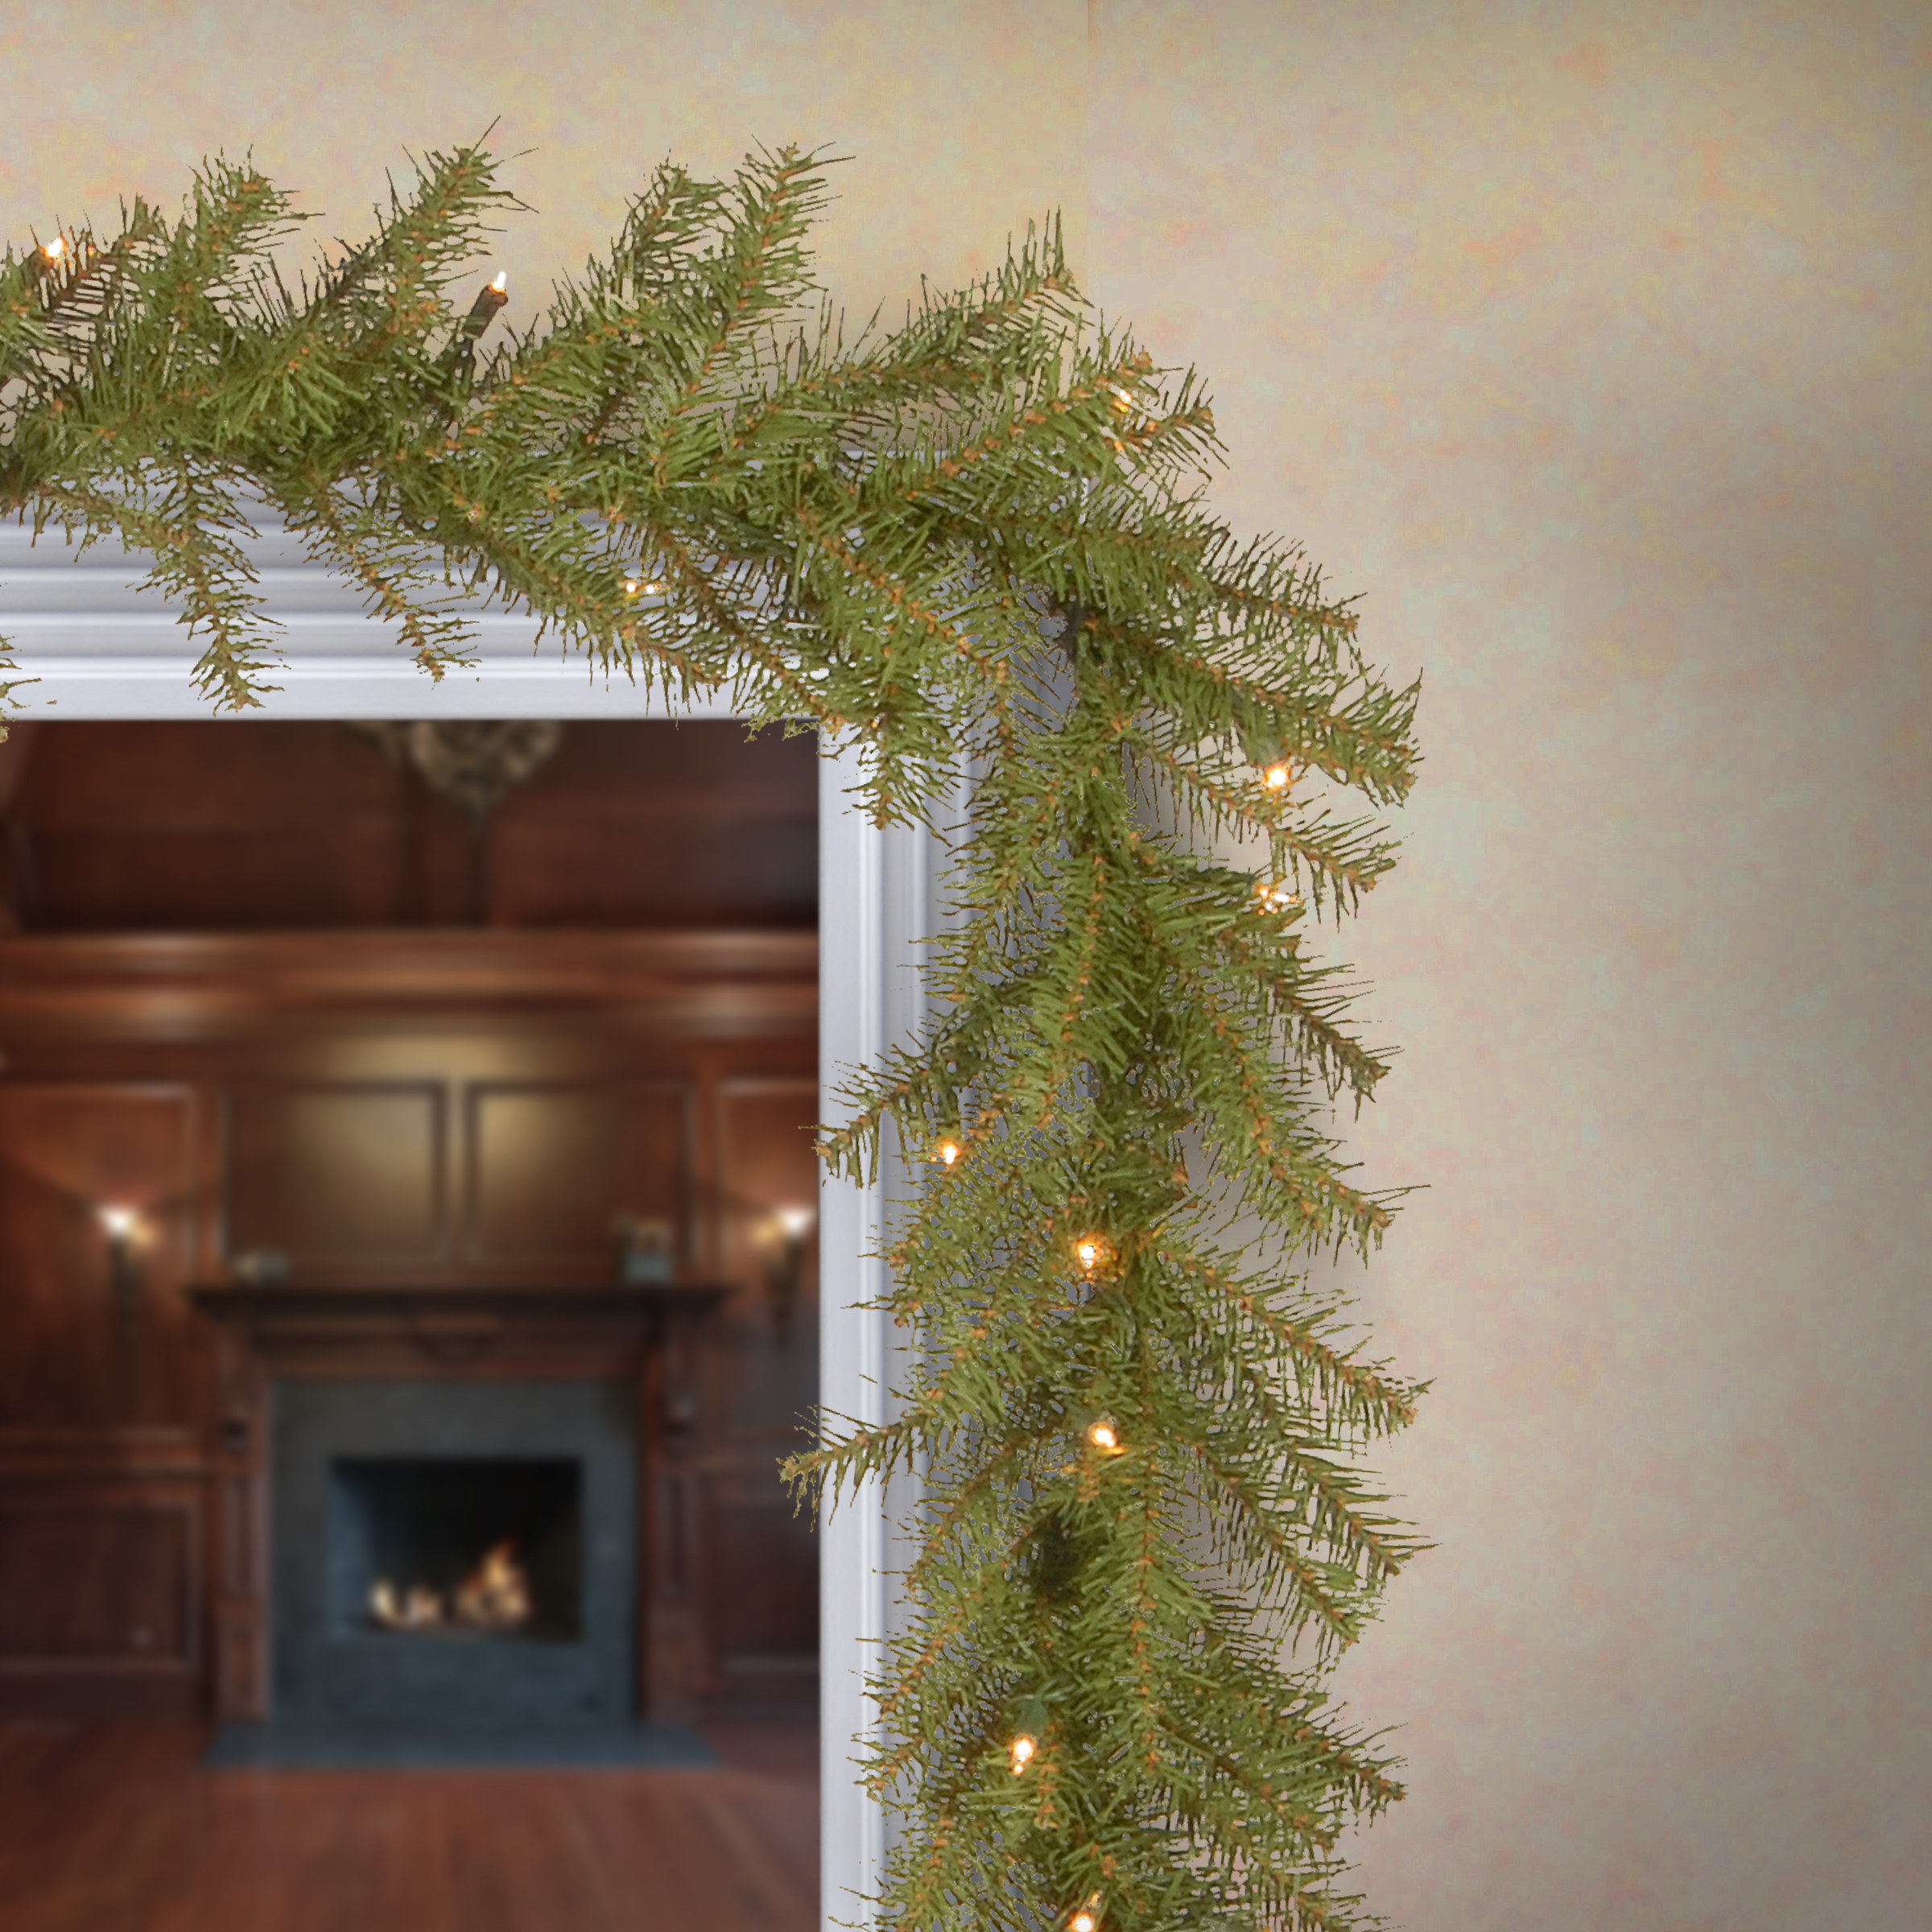 The garland draped over an entryway with lights turned on